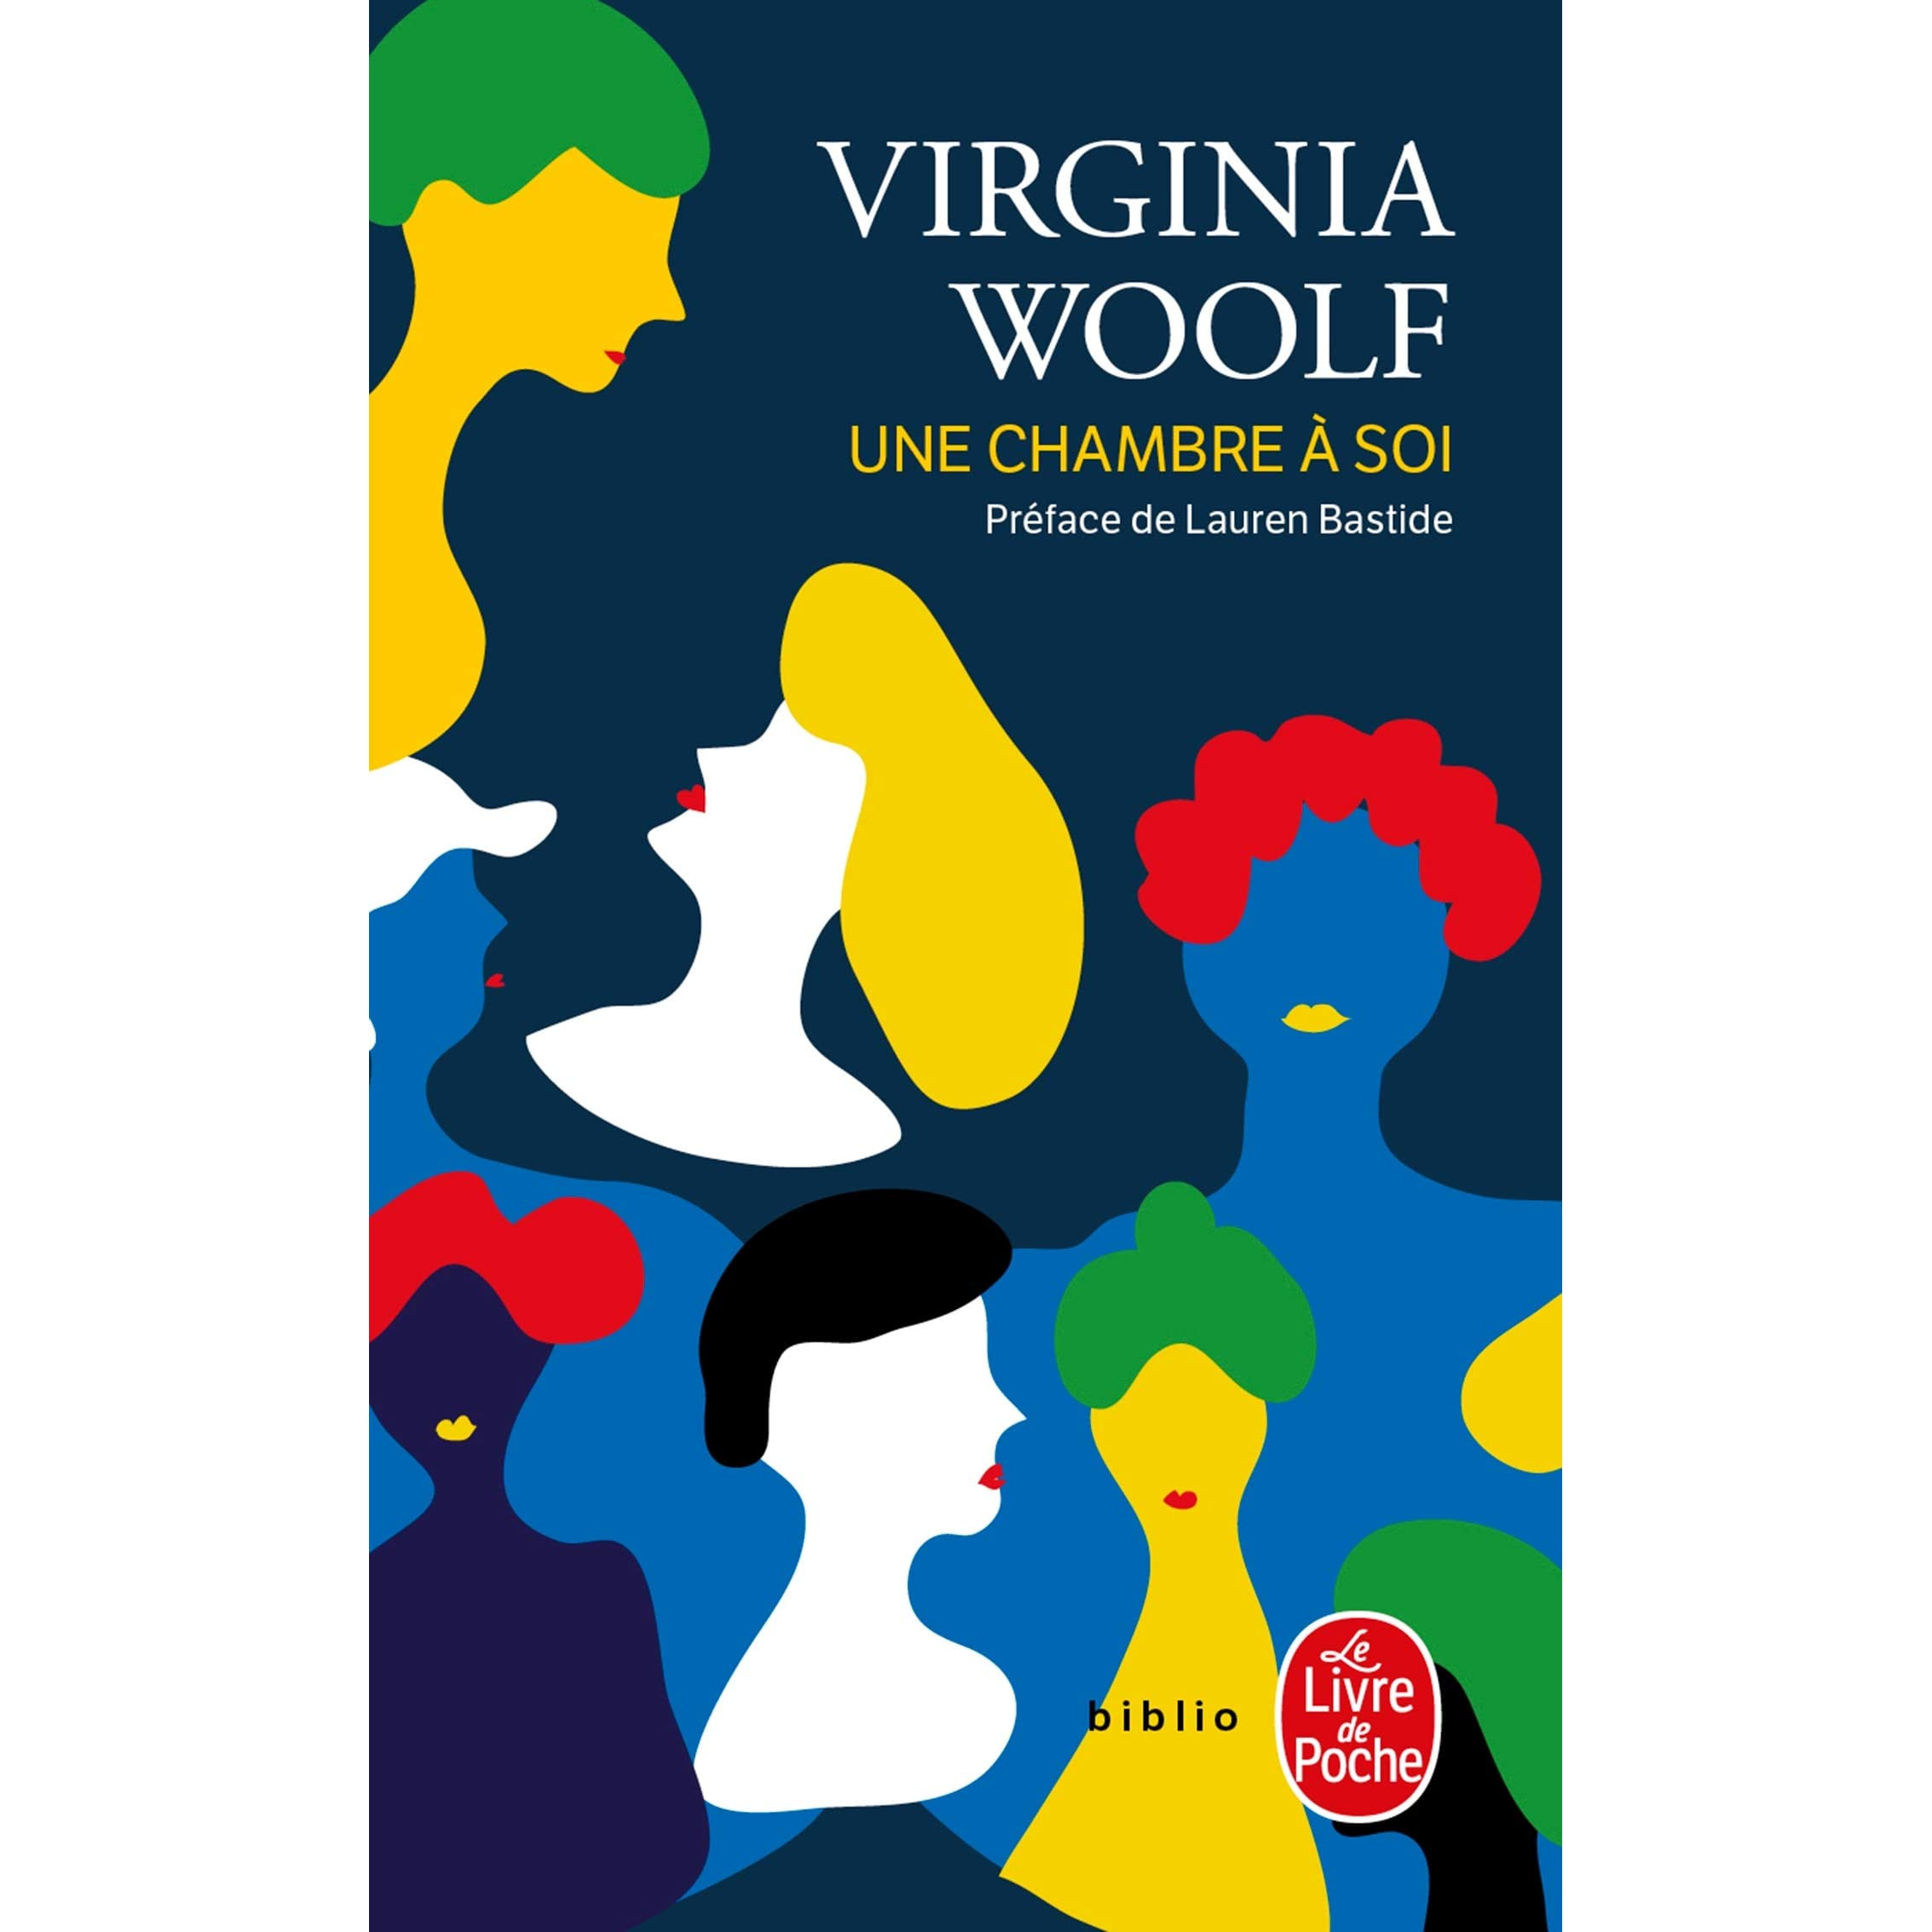 Une chambre à soi by Virginia Woolf